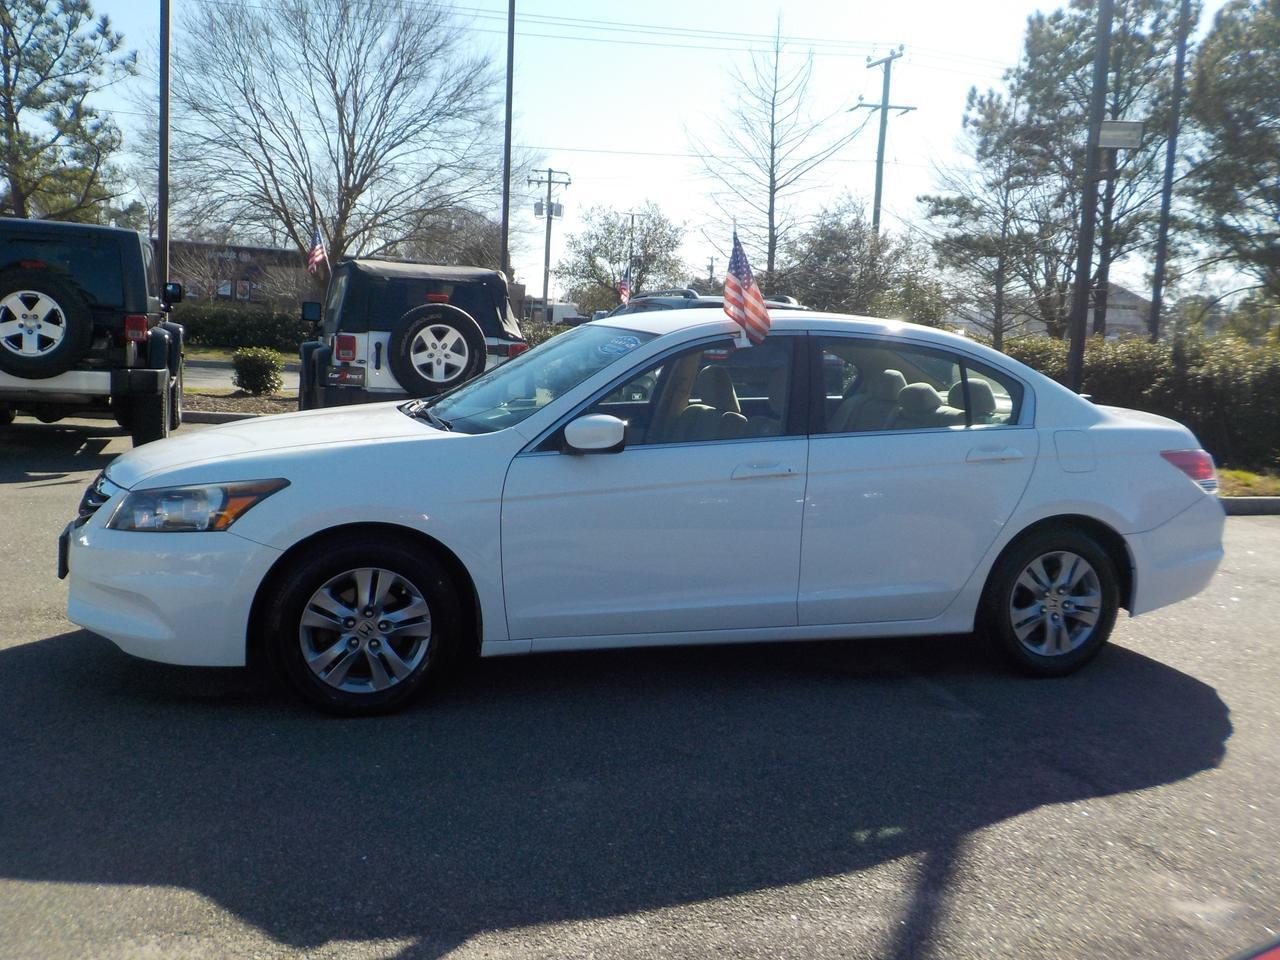 2012 HONDA ACCORD LX-P FWD, VERY CLEAN, WELL MAINTAINED, CLEAN CARFAX, ONLY 47K MILES! Virginia Beach VA